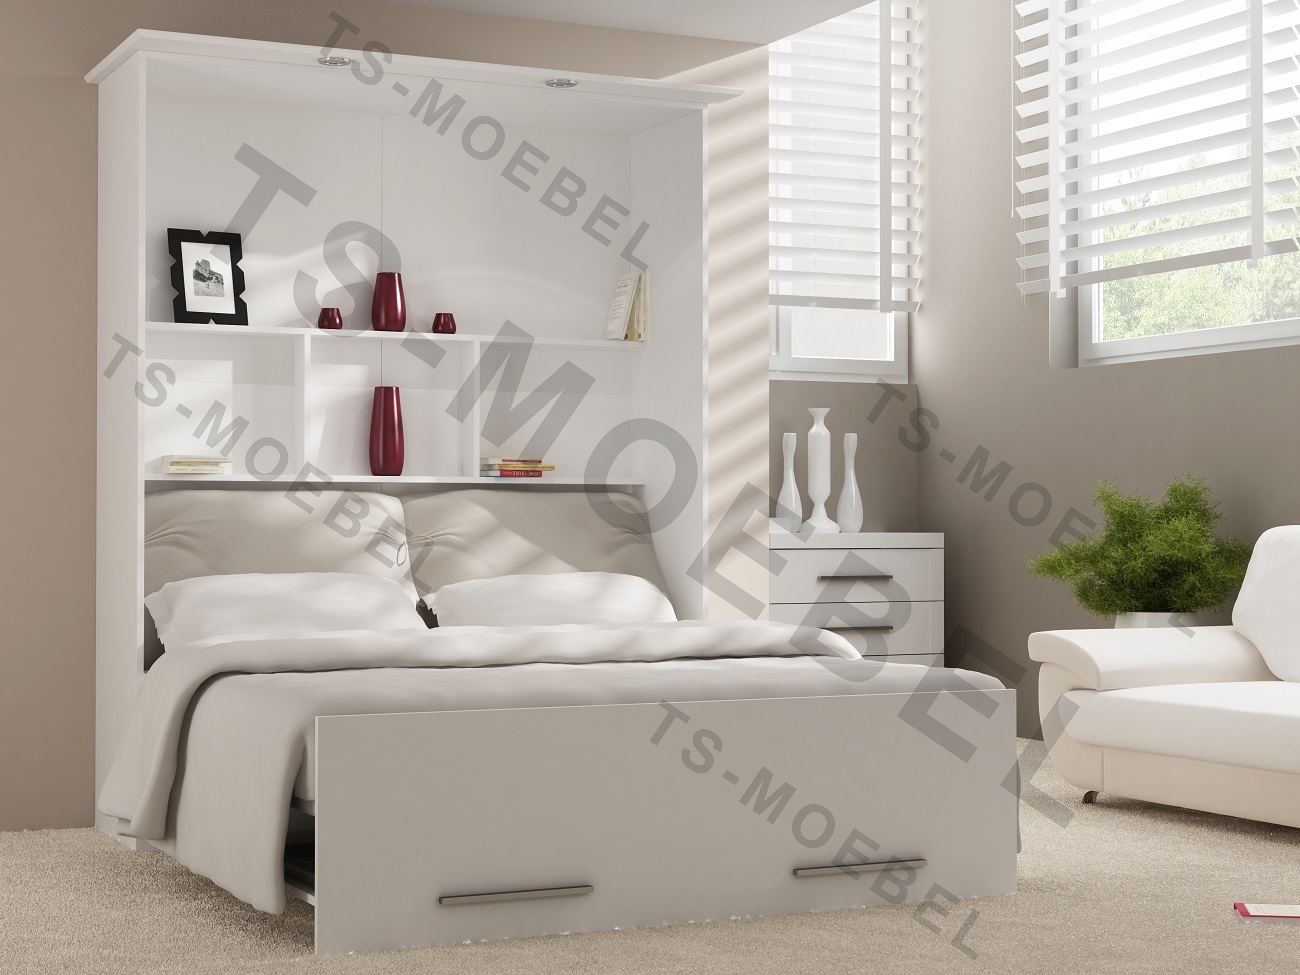 wandbett 50 w 1 140x200 cm holzfarbe weiss hochkant. Black Bedroom Furniture Sets. Home Design Ideas